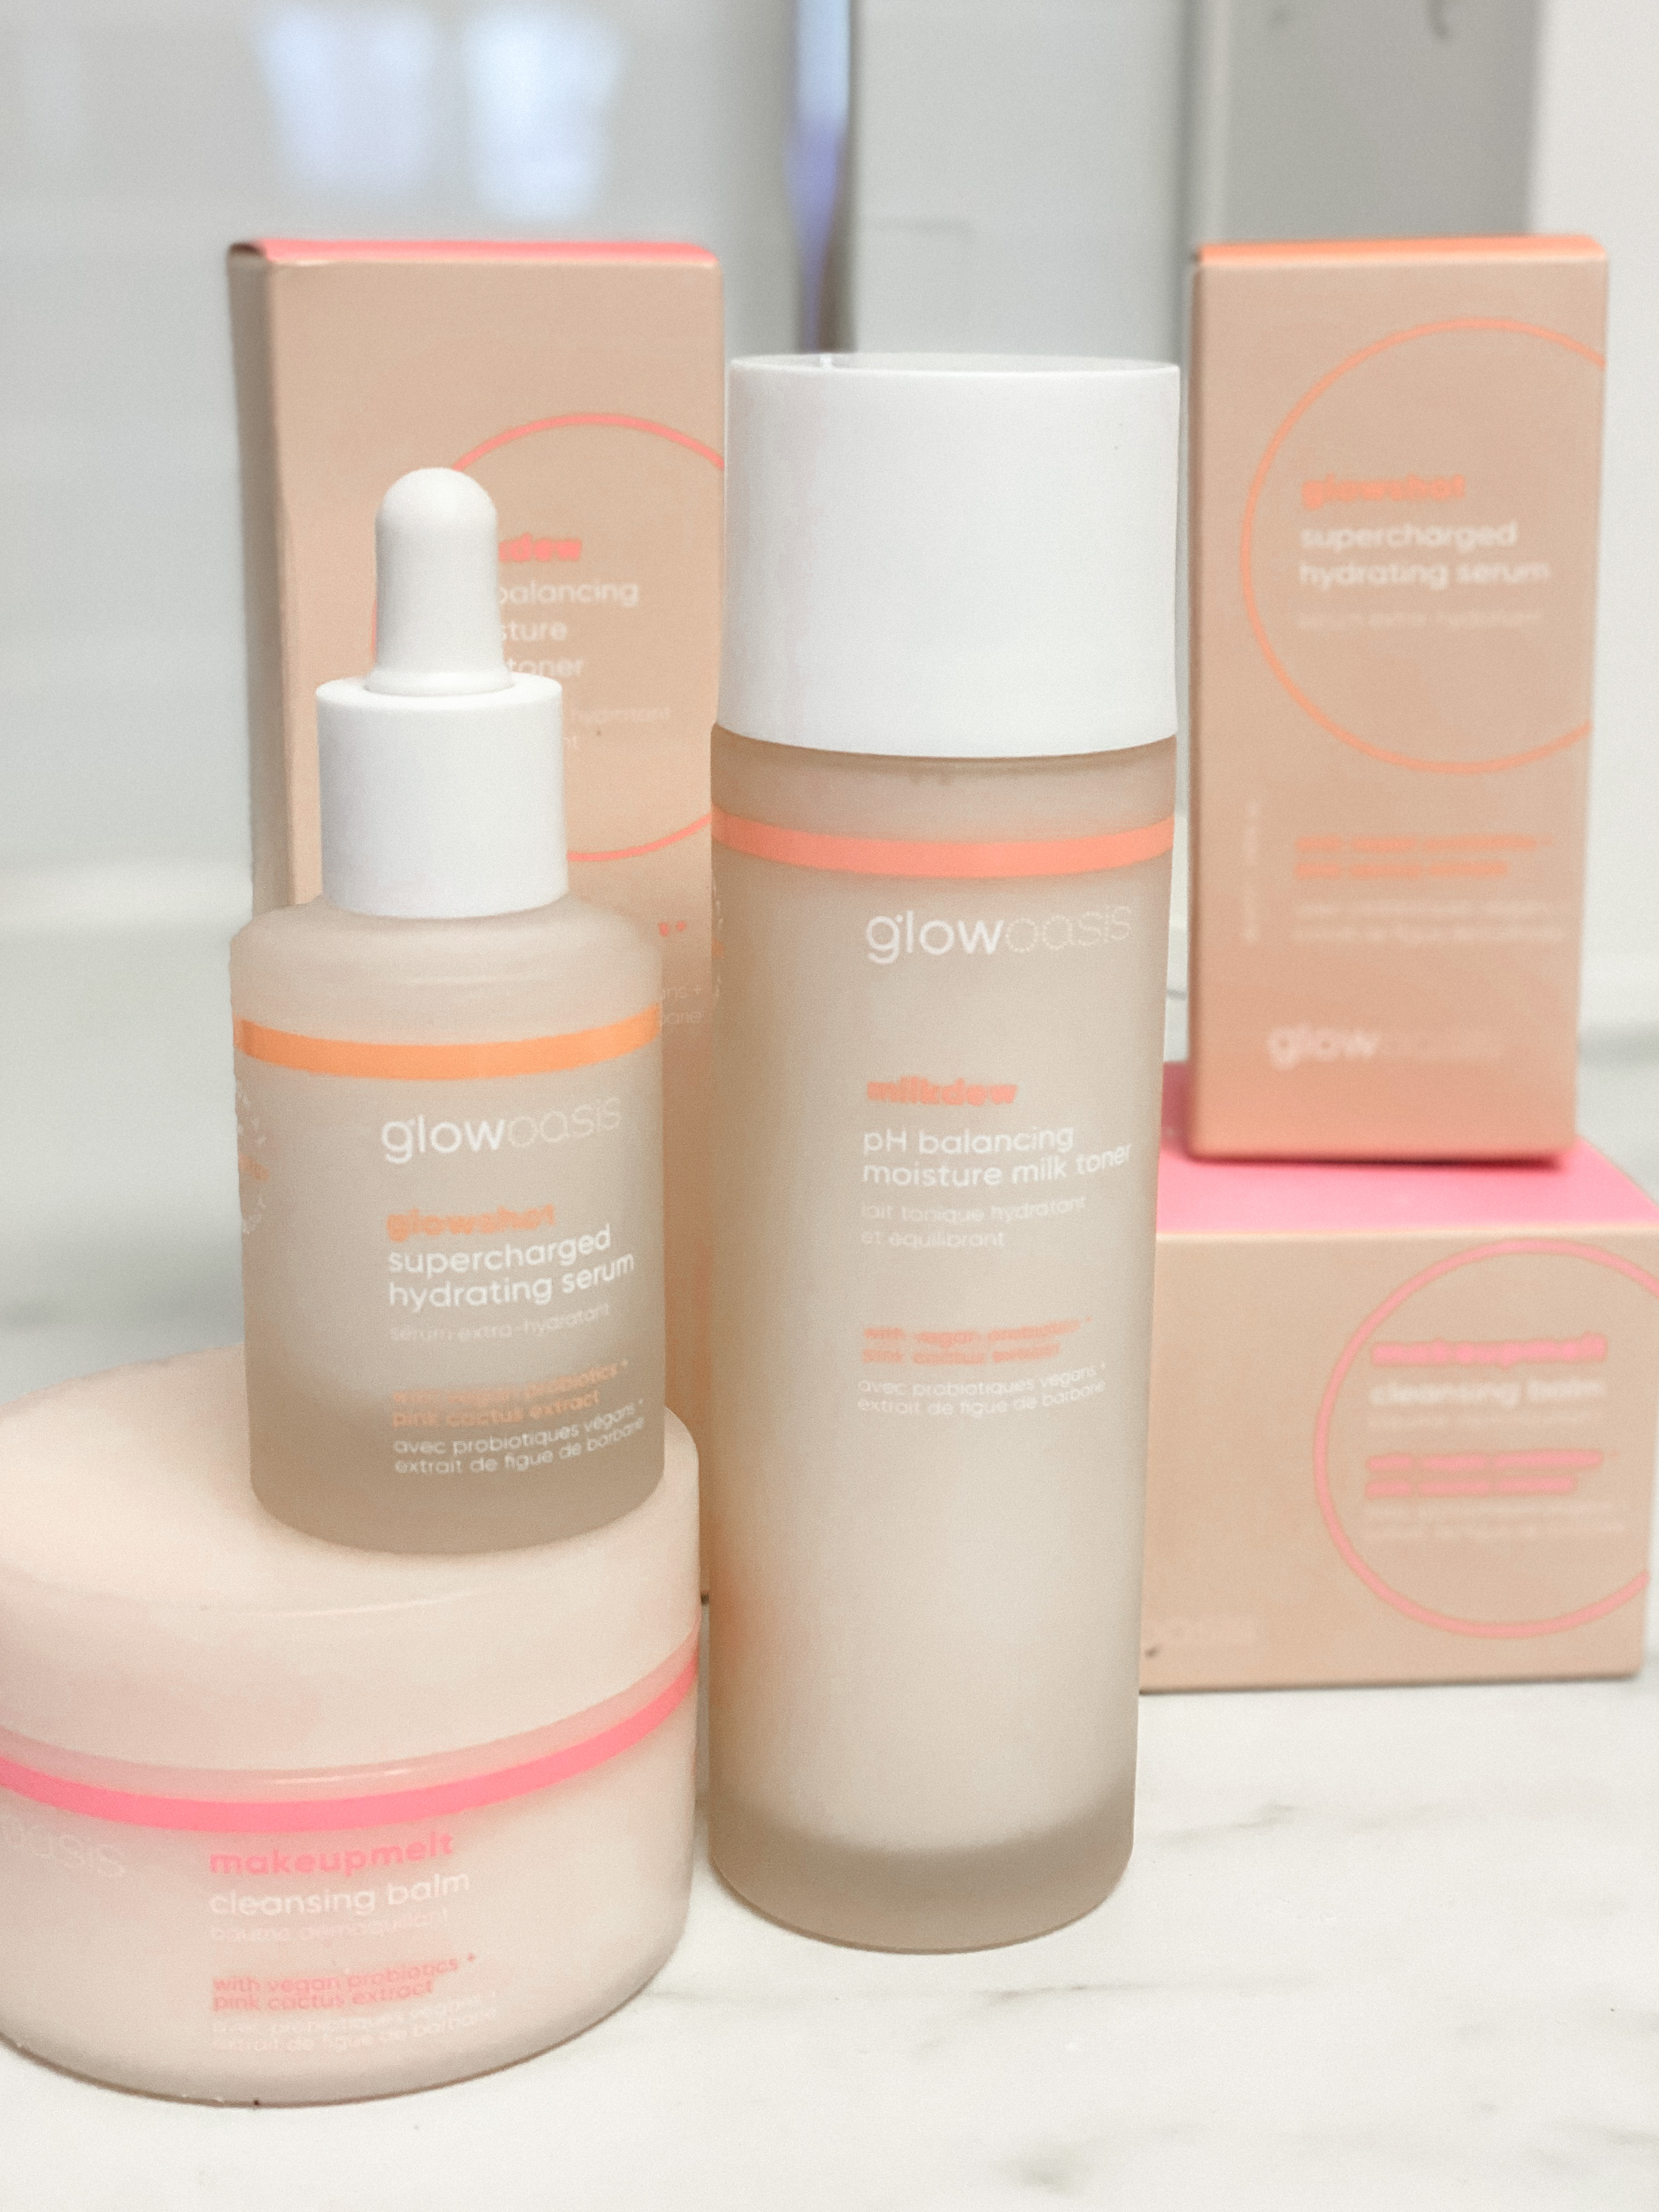 GlowOasis Skincare by popular Monterey beauty blog, Haute Beauty Guide: image of GlowOasis skincare probiotic products.